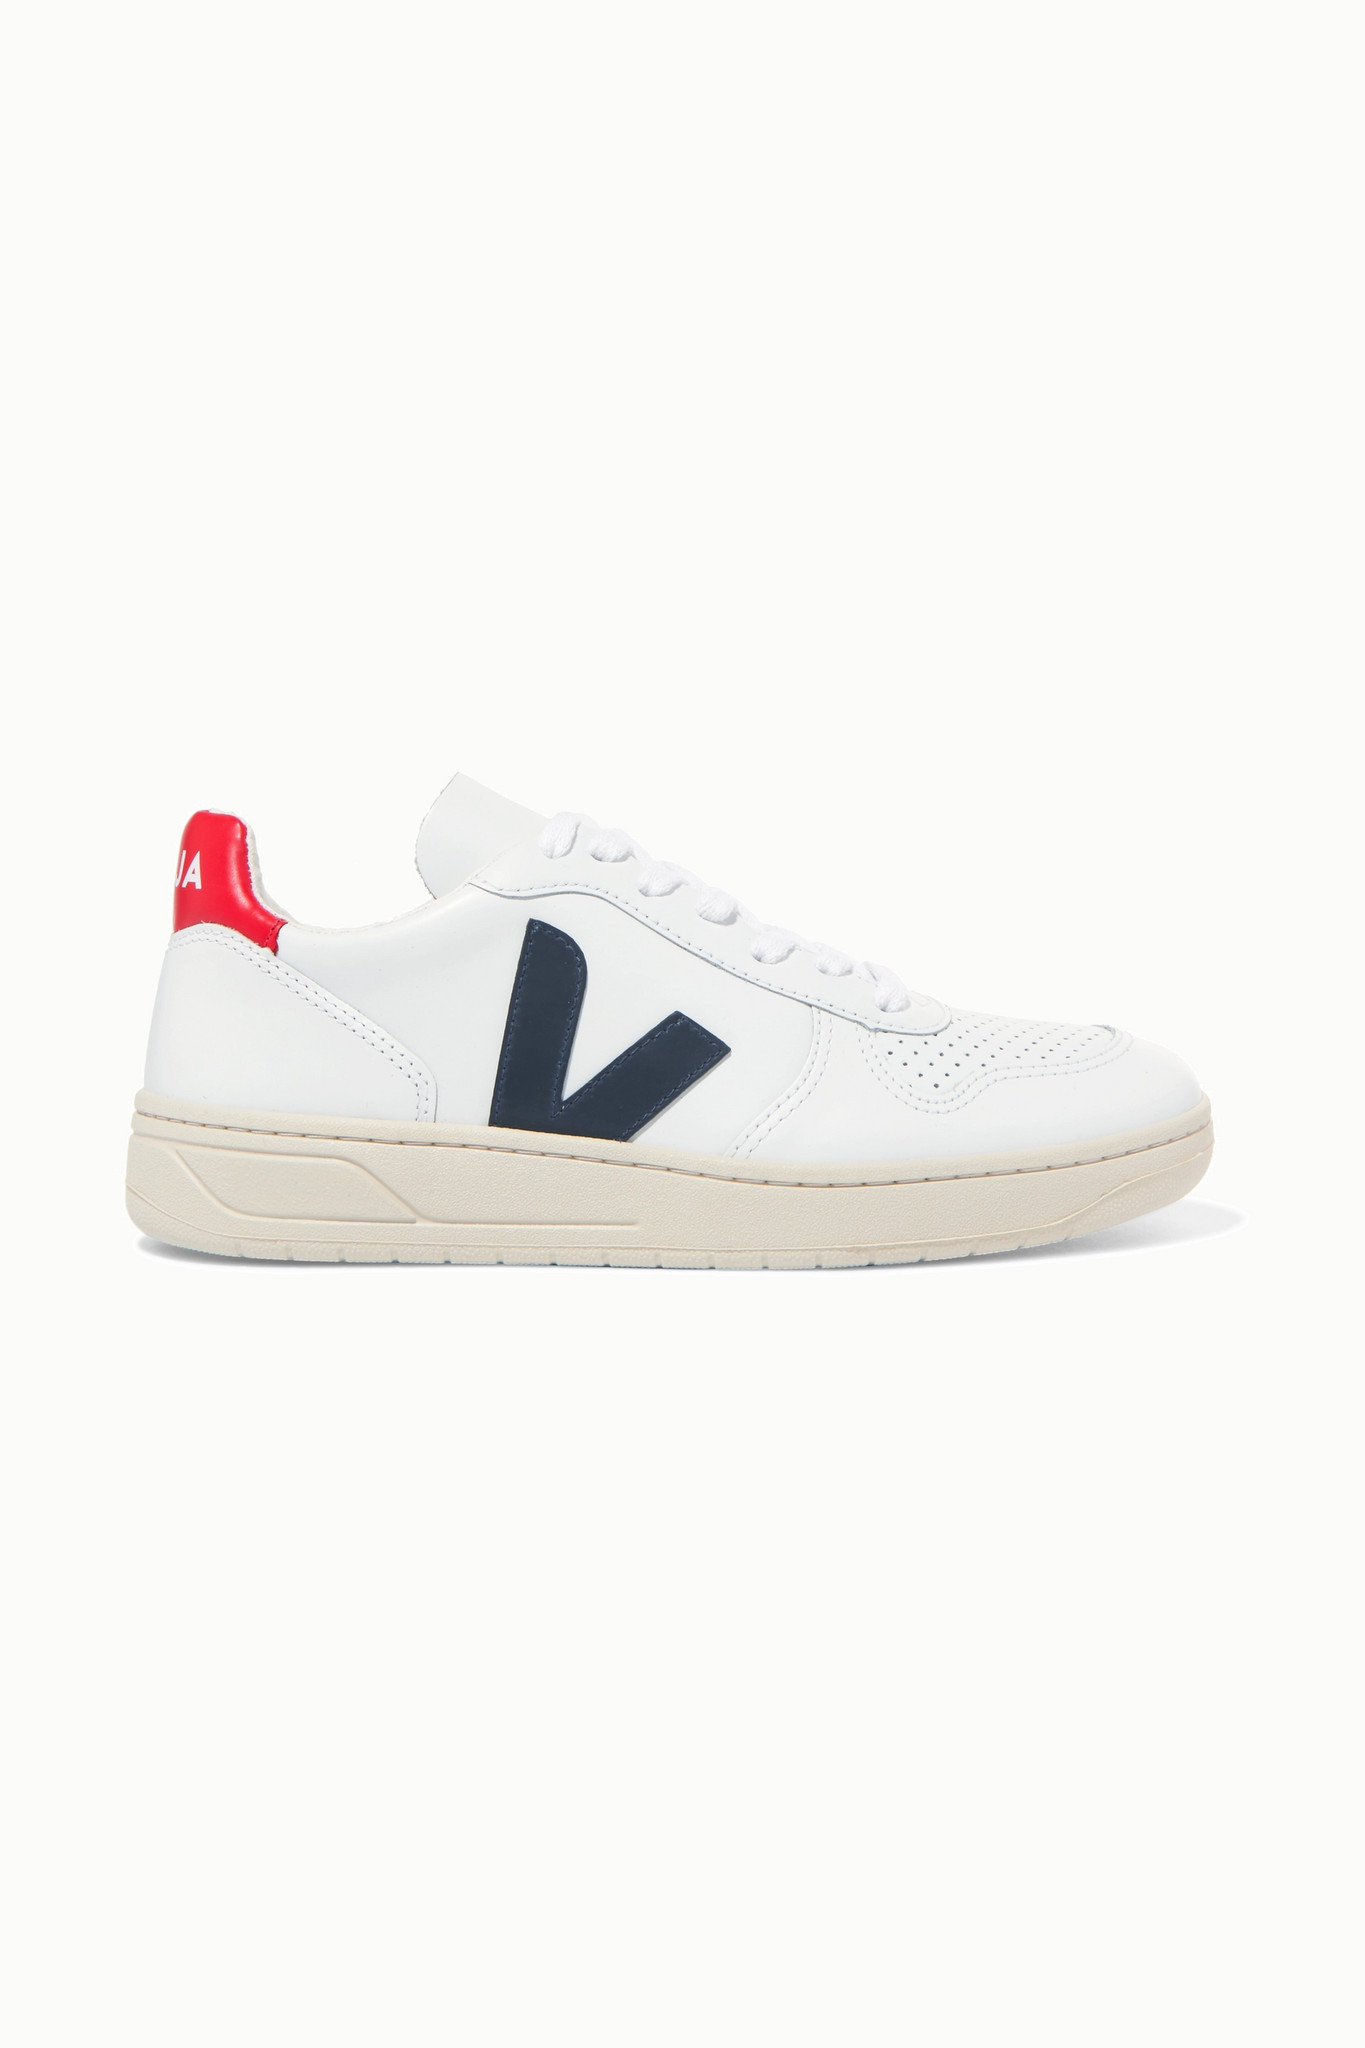 VEJA - + Net Sustain V-10 Leather Sneakers - White - IT39